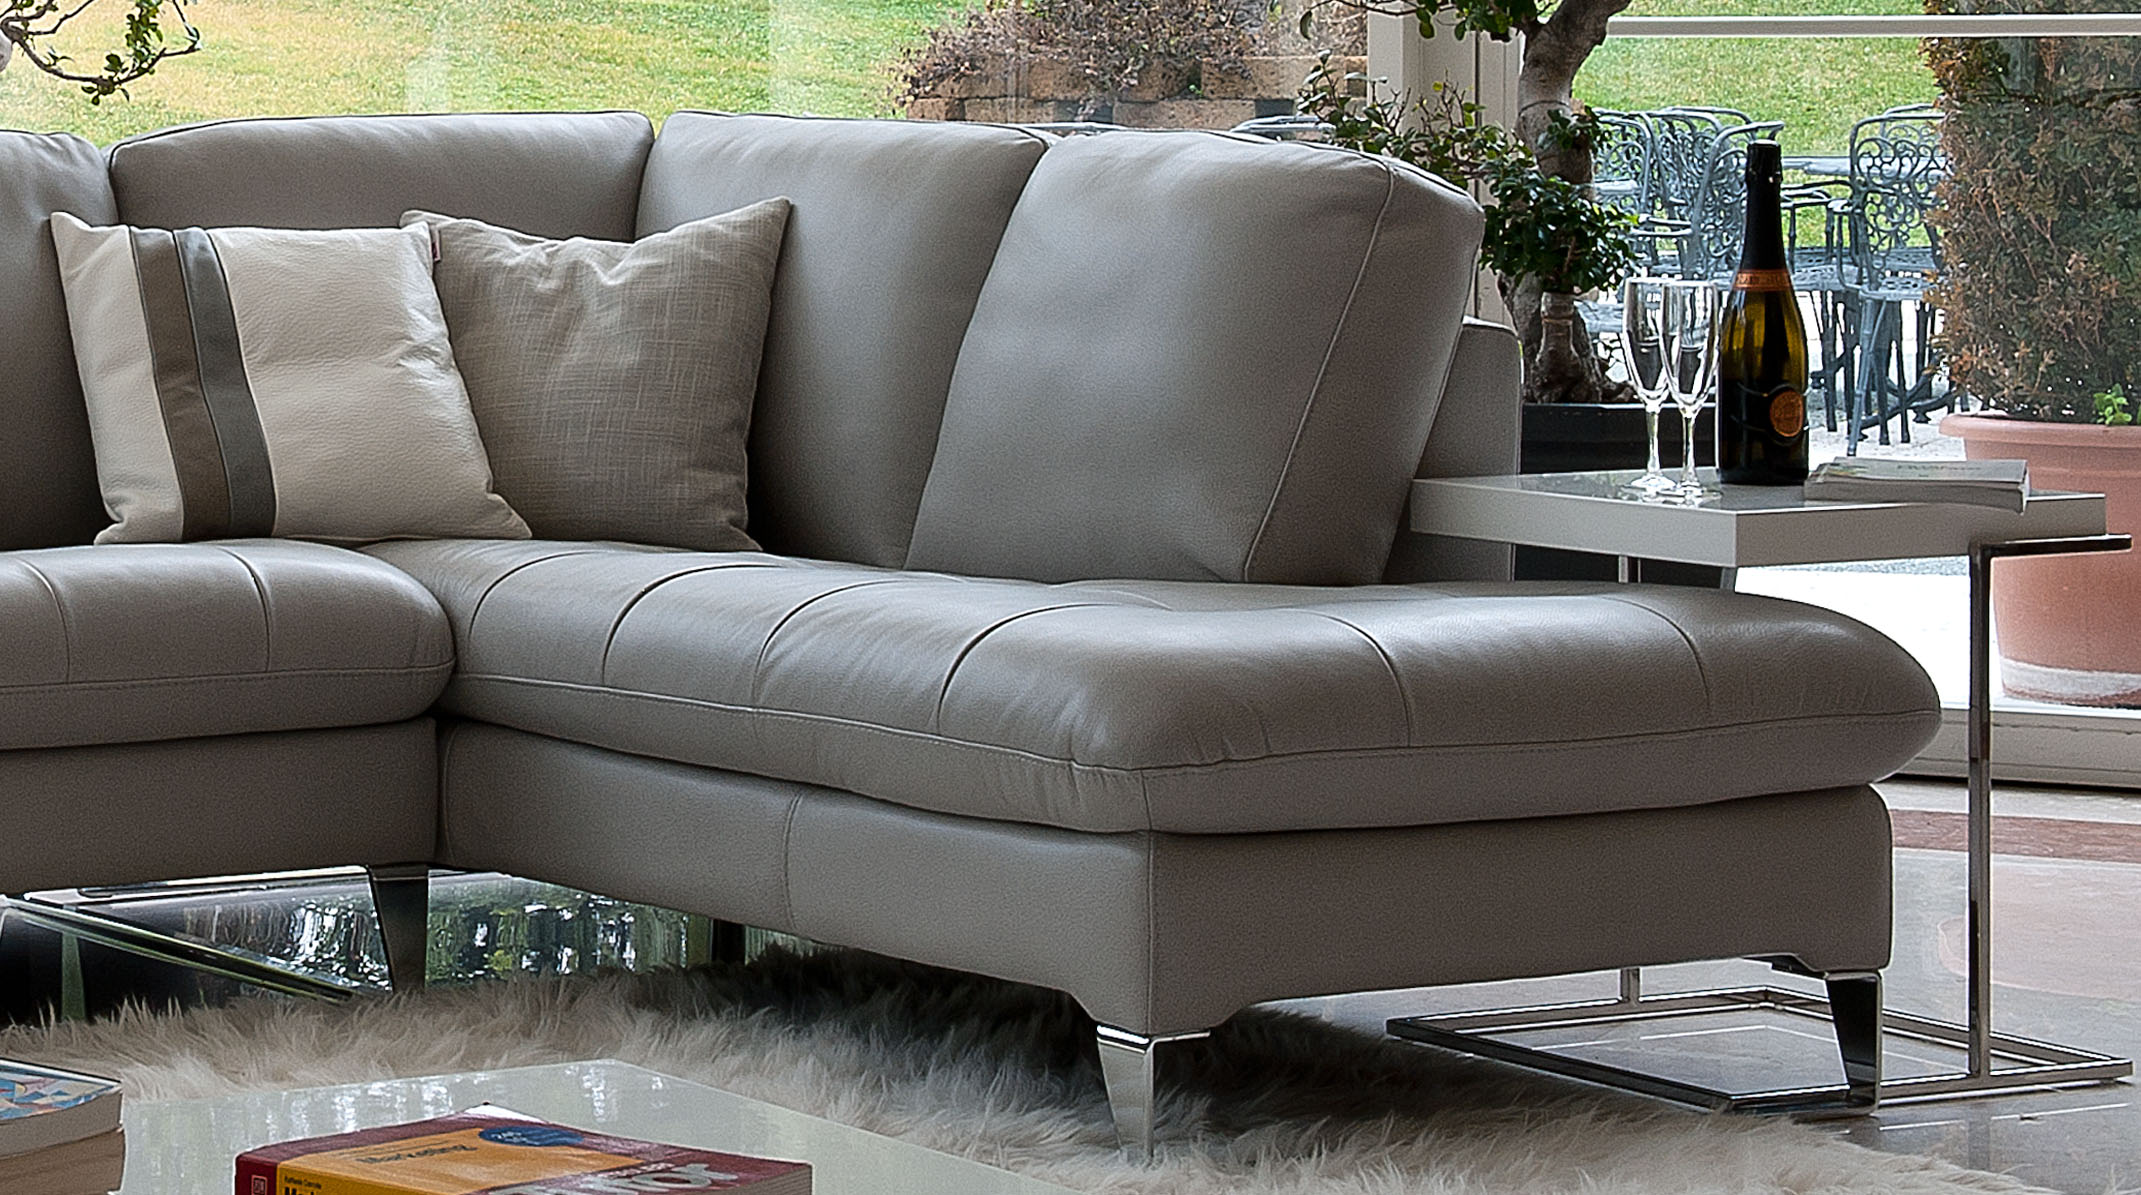 Refined Covered In All Leather Sectional Larger Image